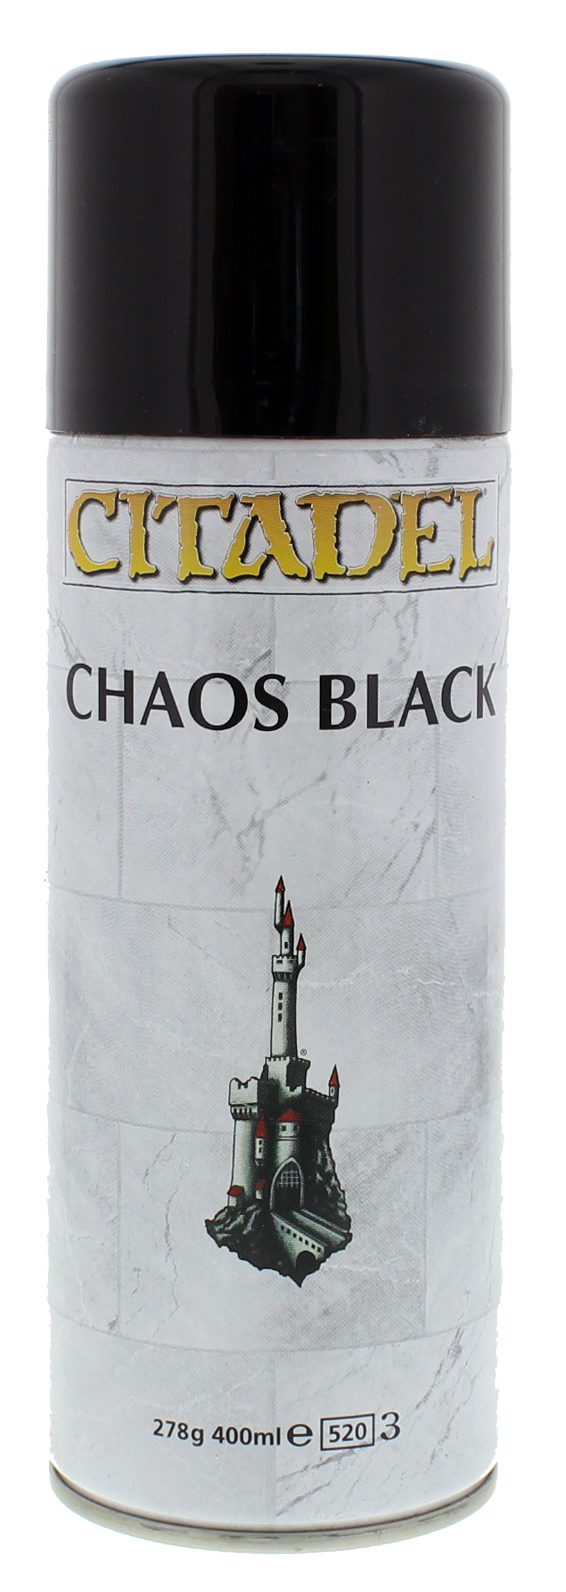 Citadel Spray Paint - Chaos Black image